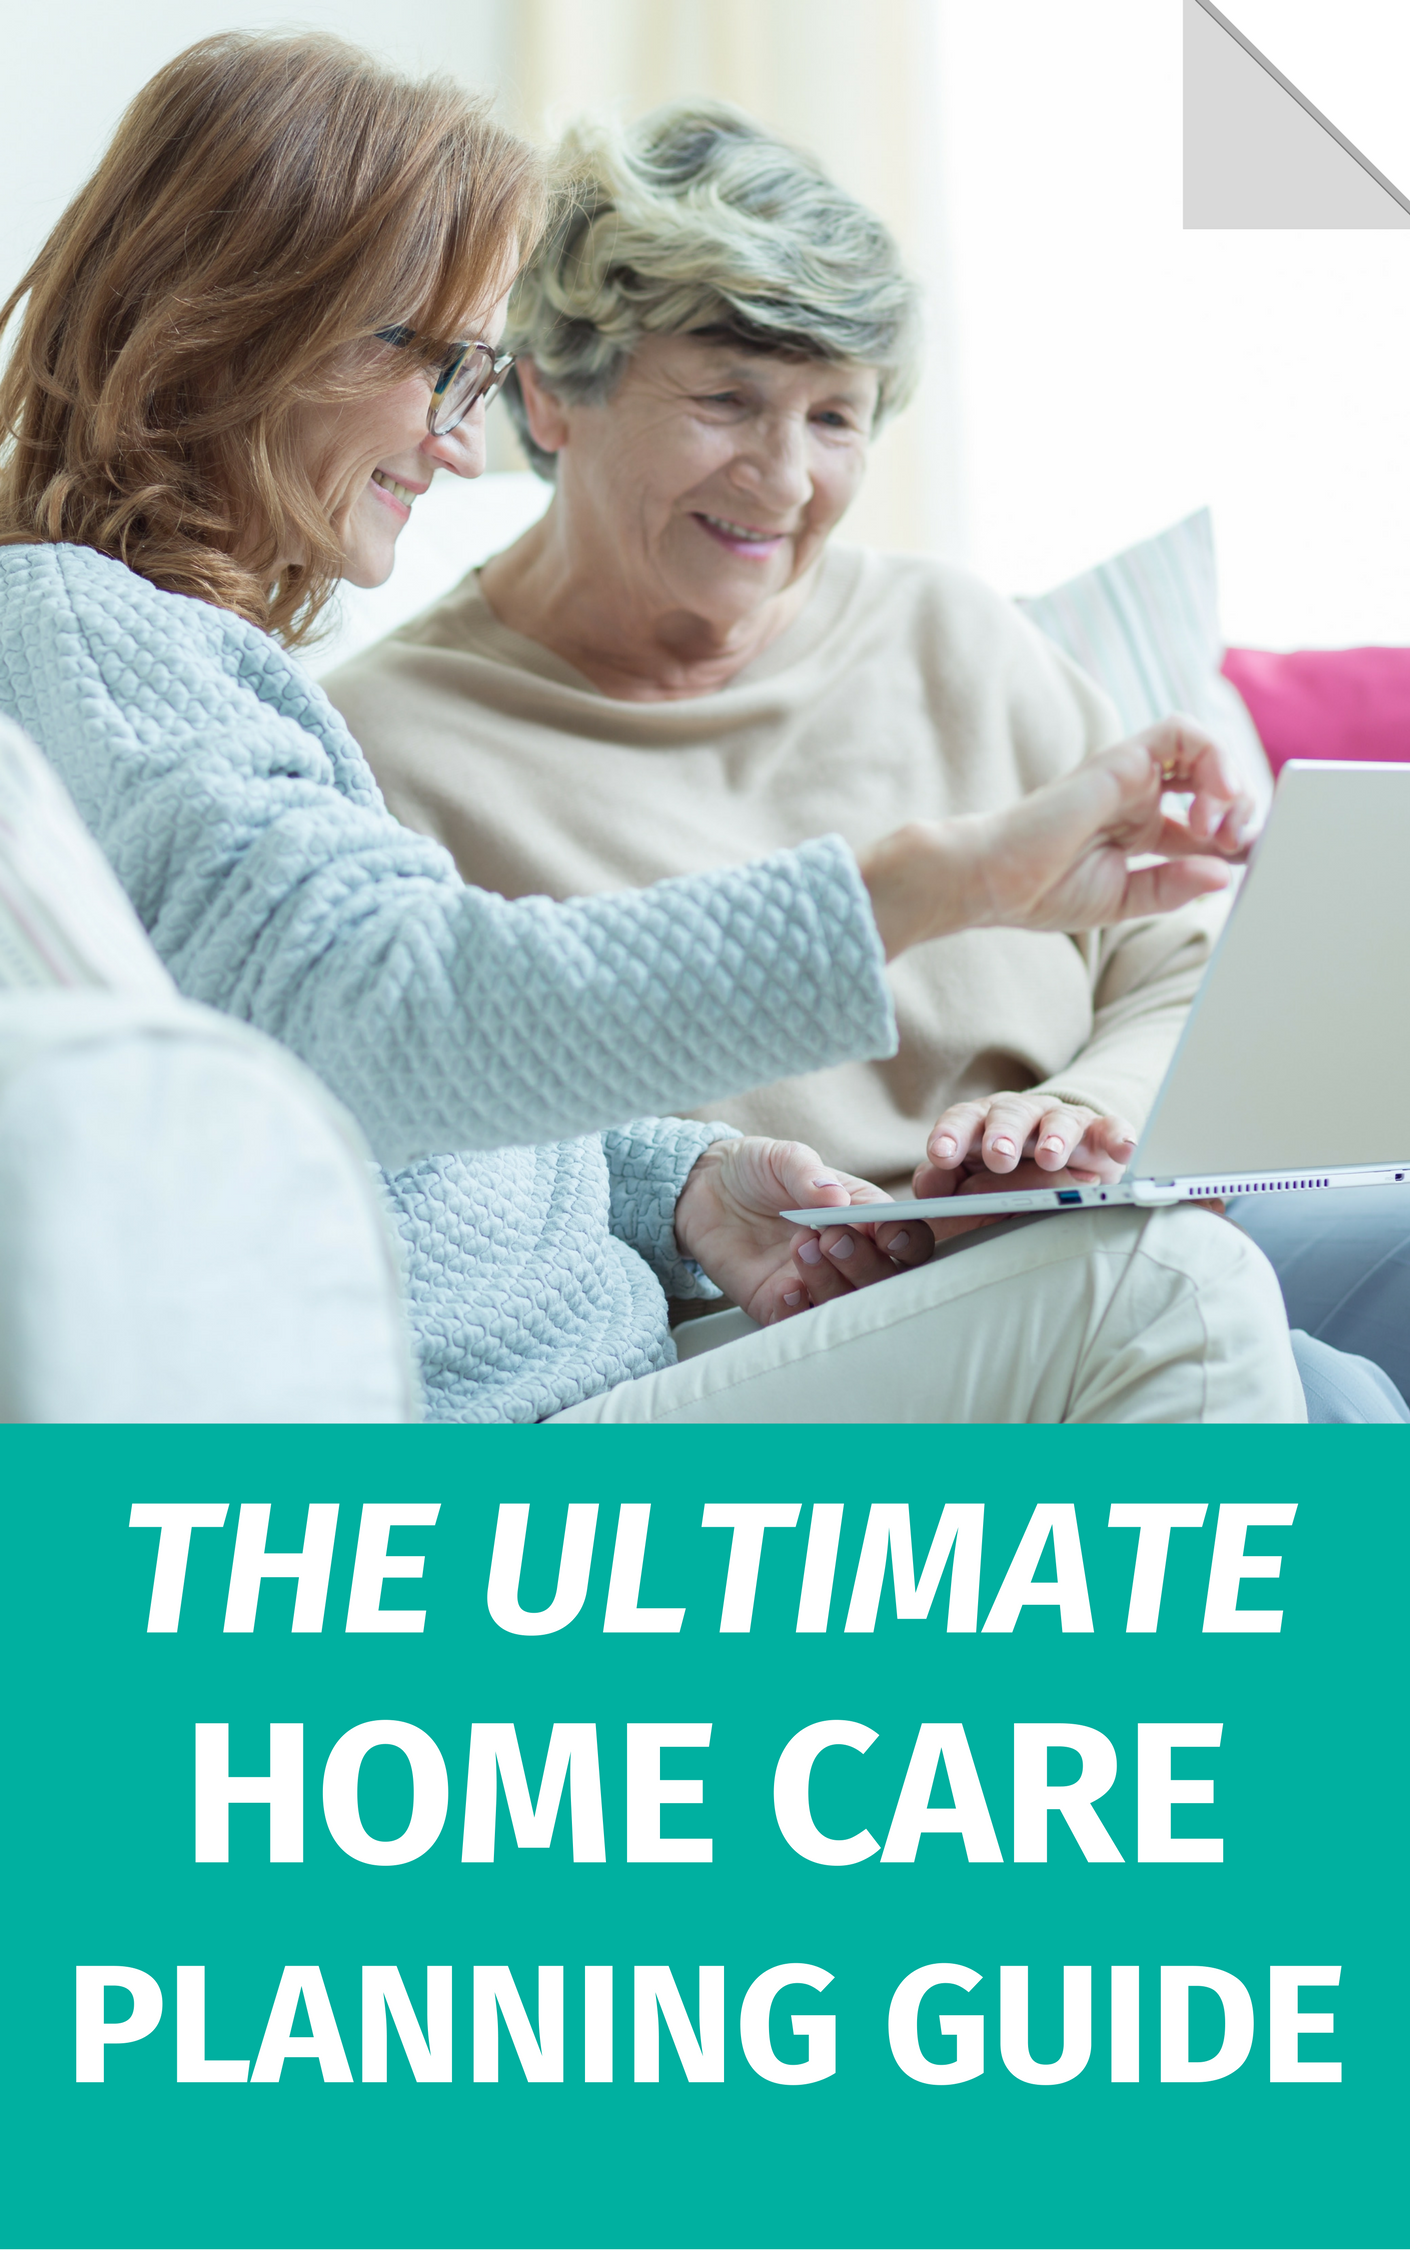 The Ultimate Home Care Planning Guide.png